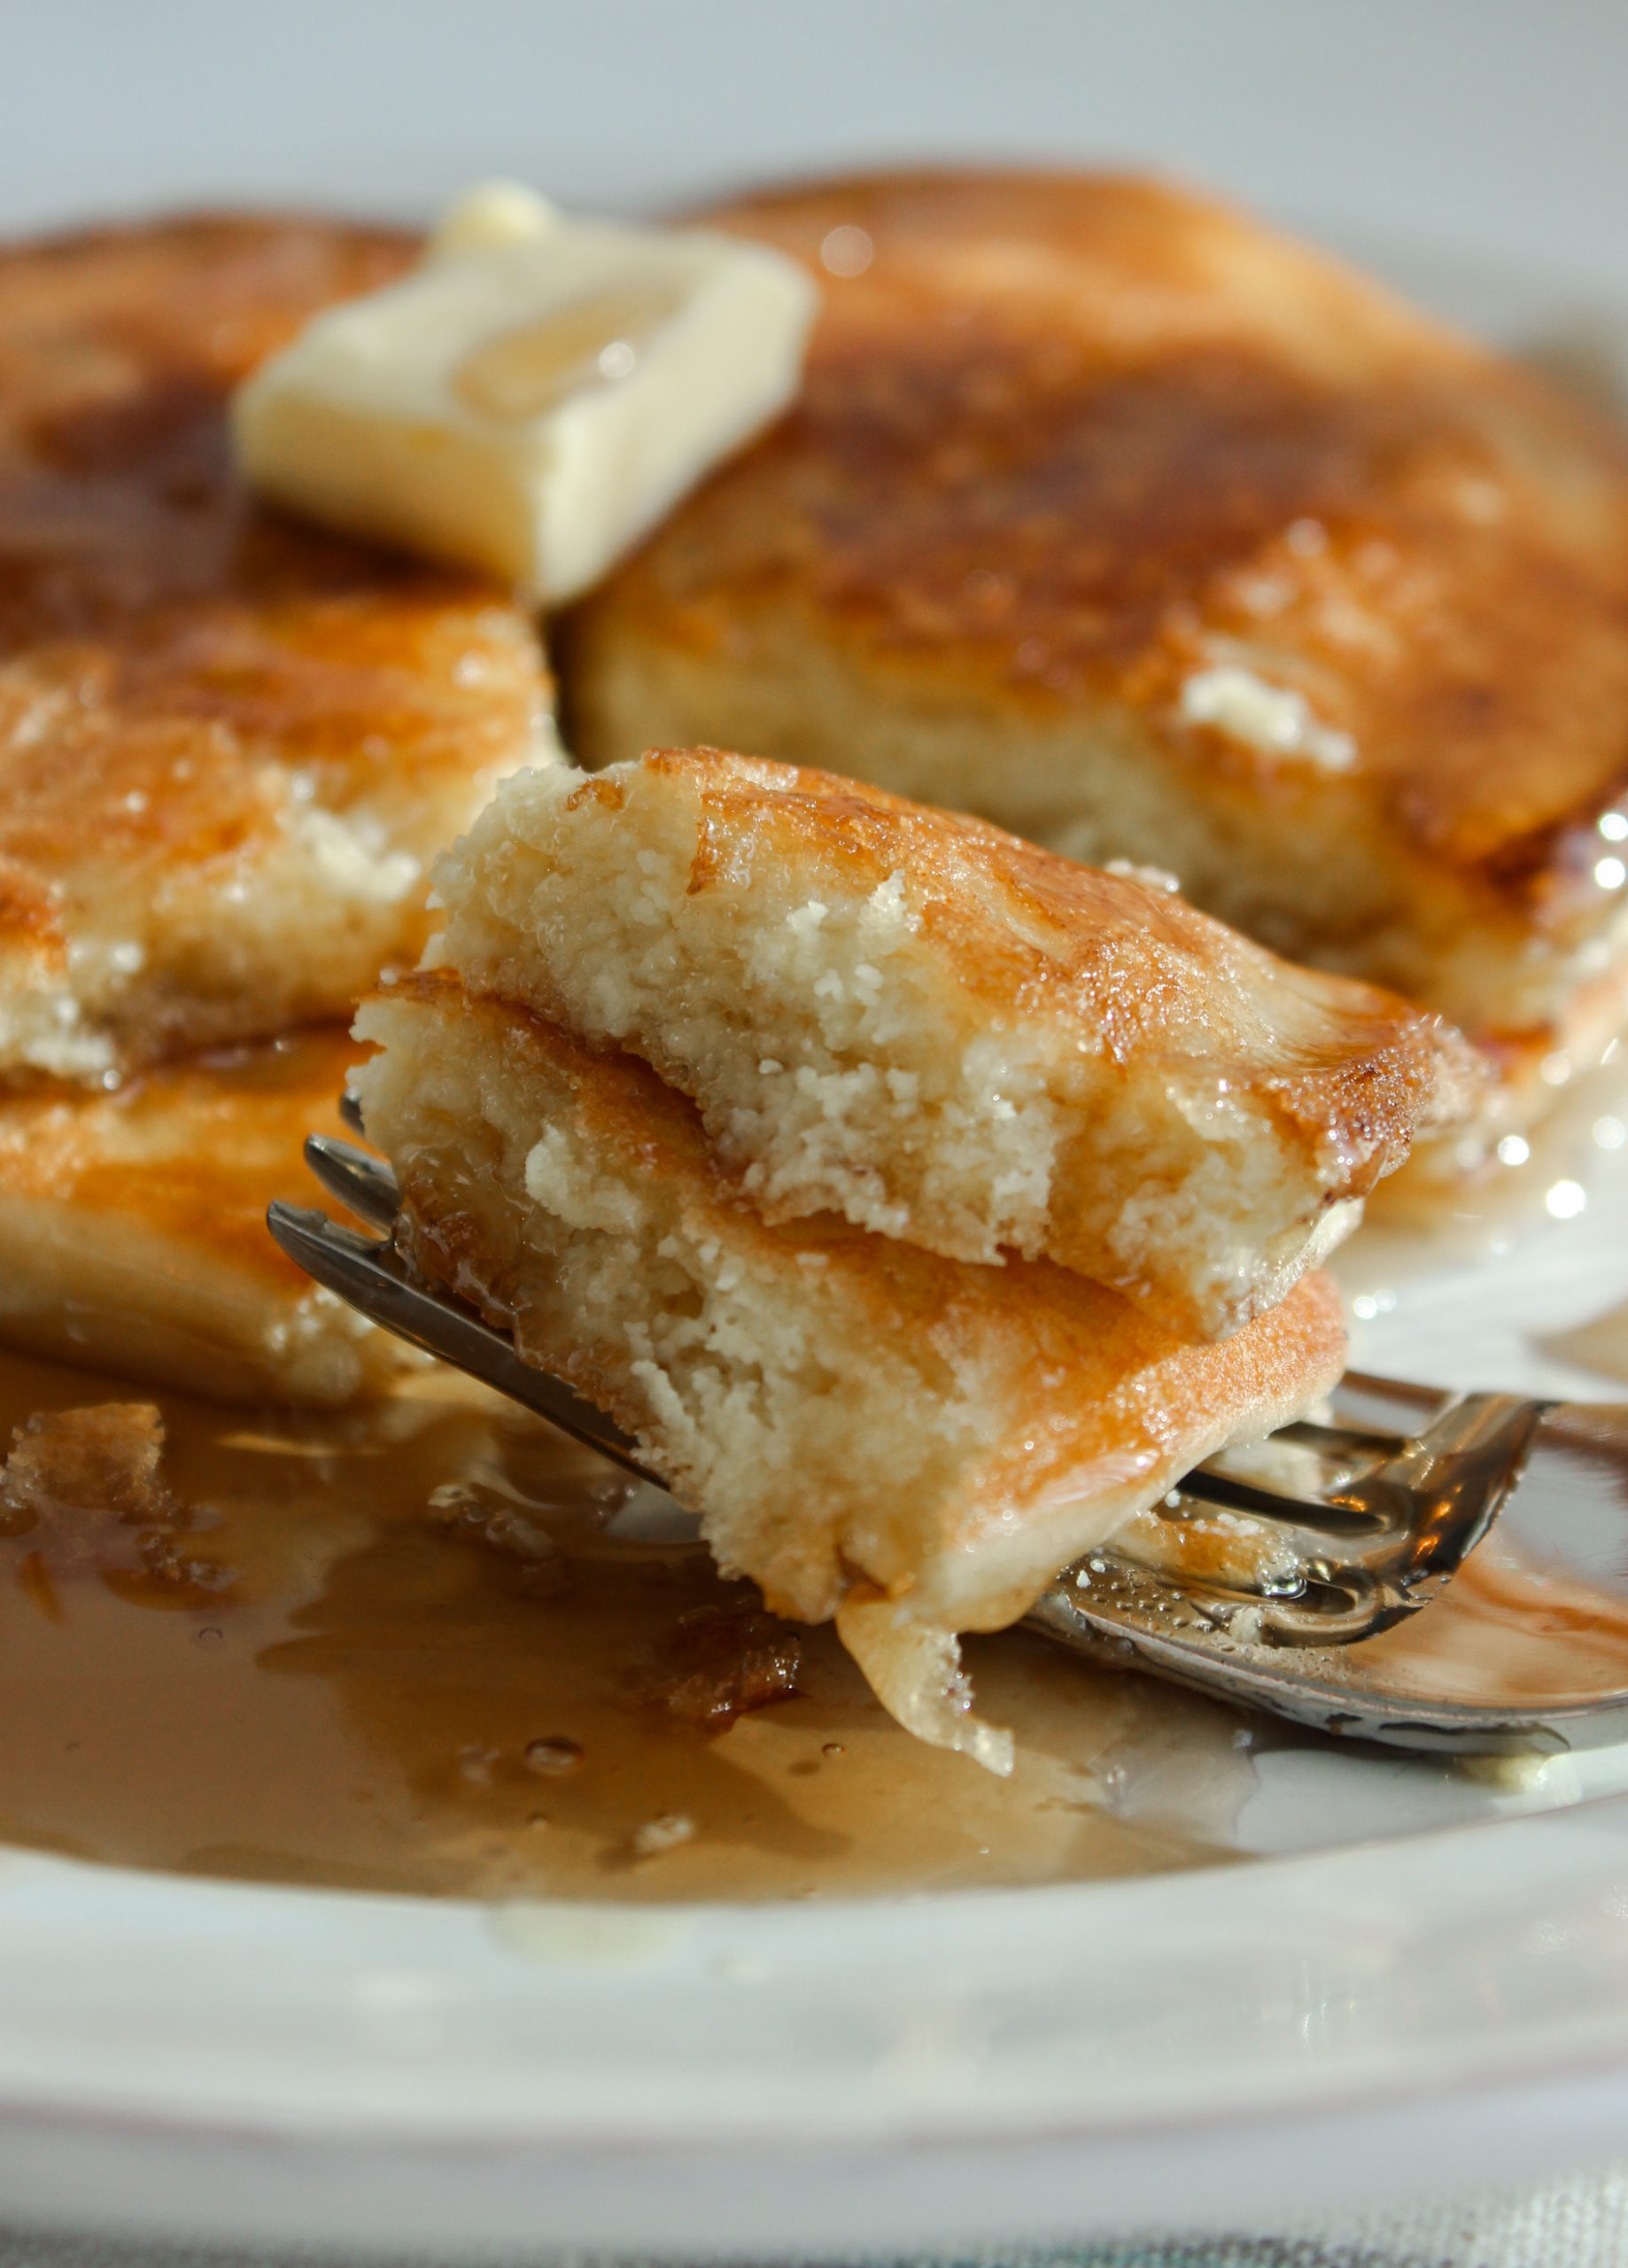 No other keto pancake recipe can stack up to this one! Thick, fluffy, and buttery low carb keto pancakes are just 1.8 net carbs per serving.